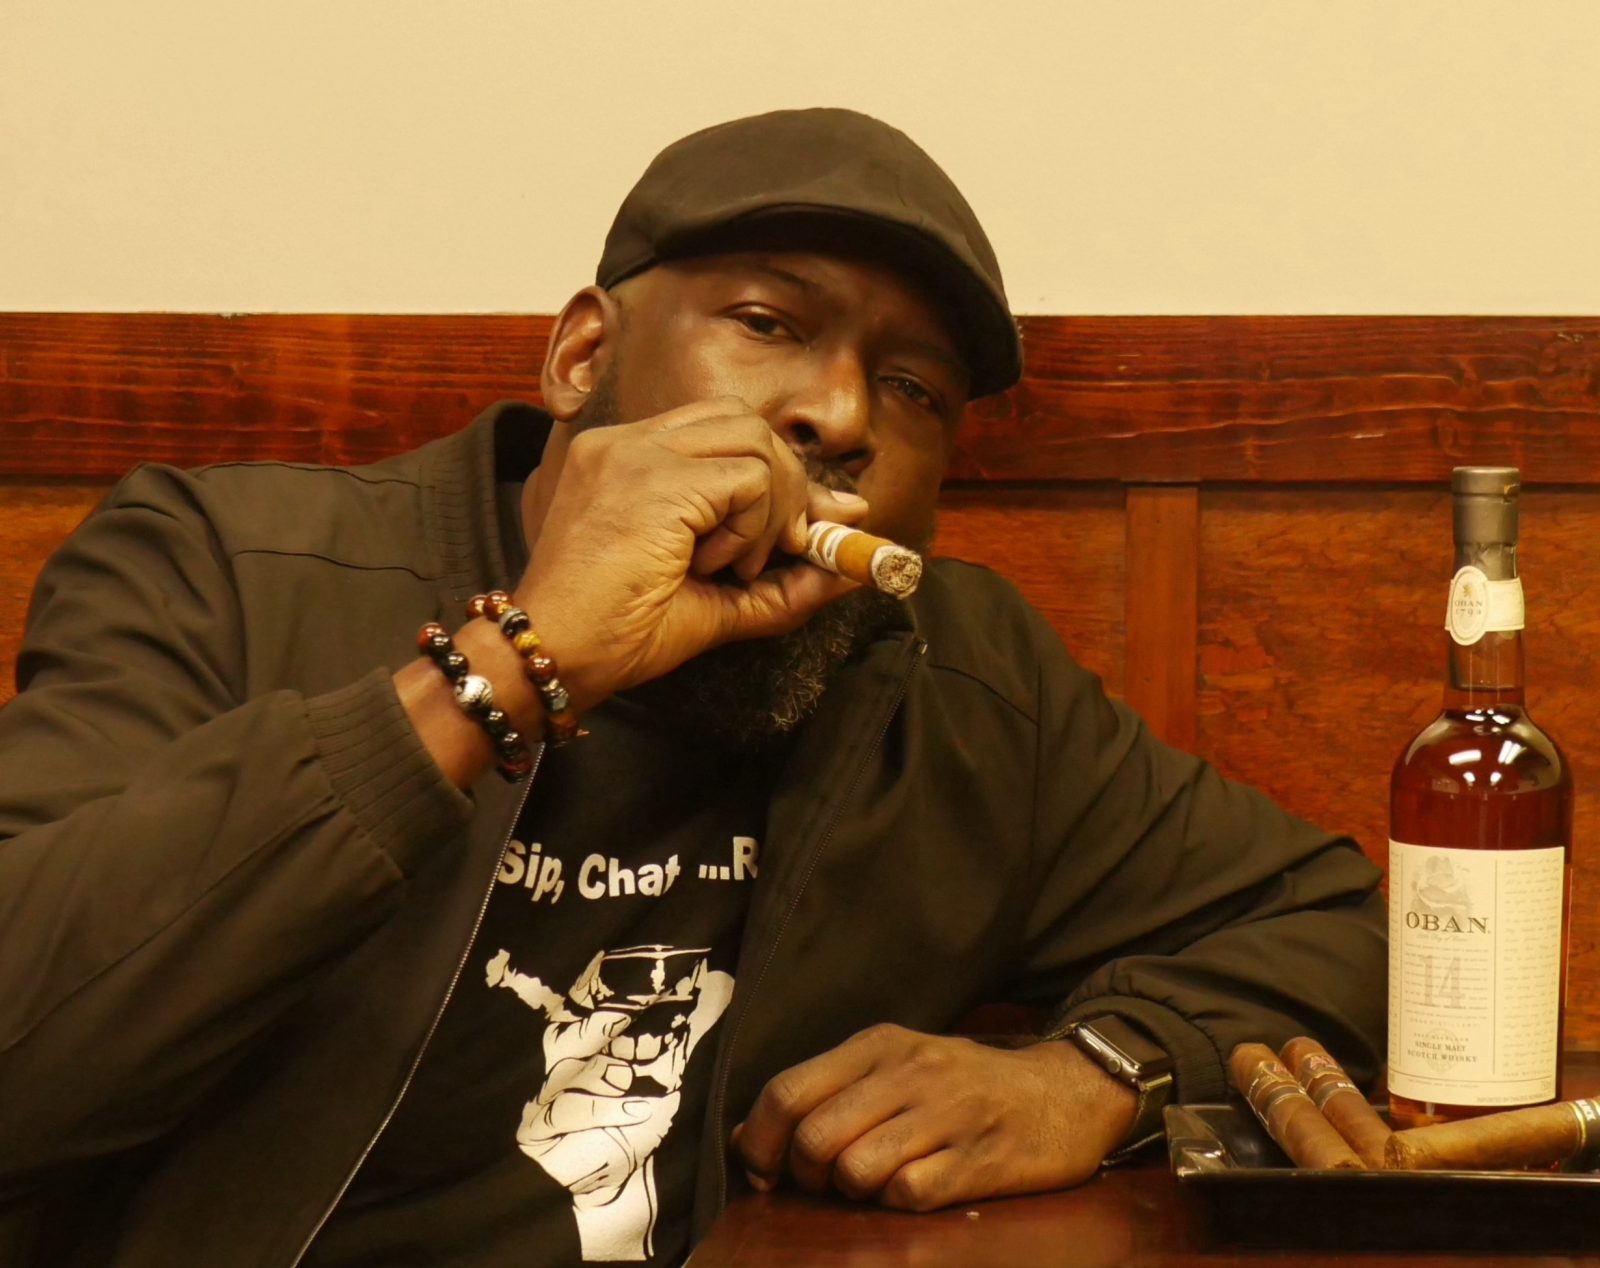 Reggie Kimble of The Stickman podcast offers one of many great cigar podcasts you can enjoy